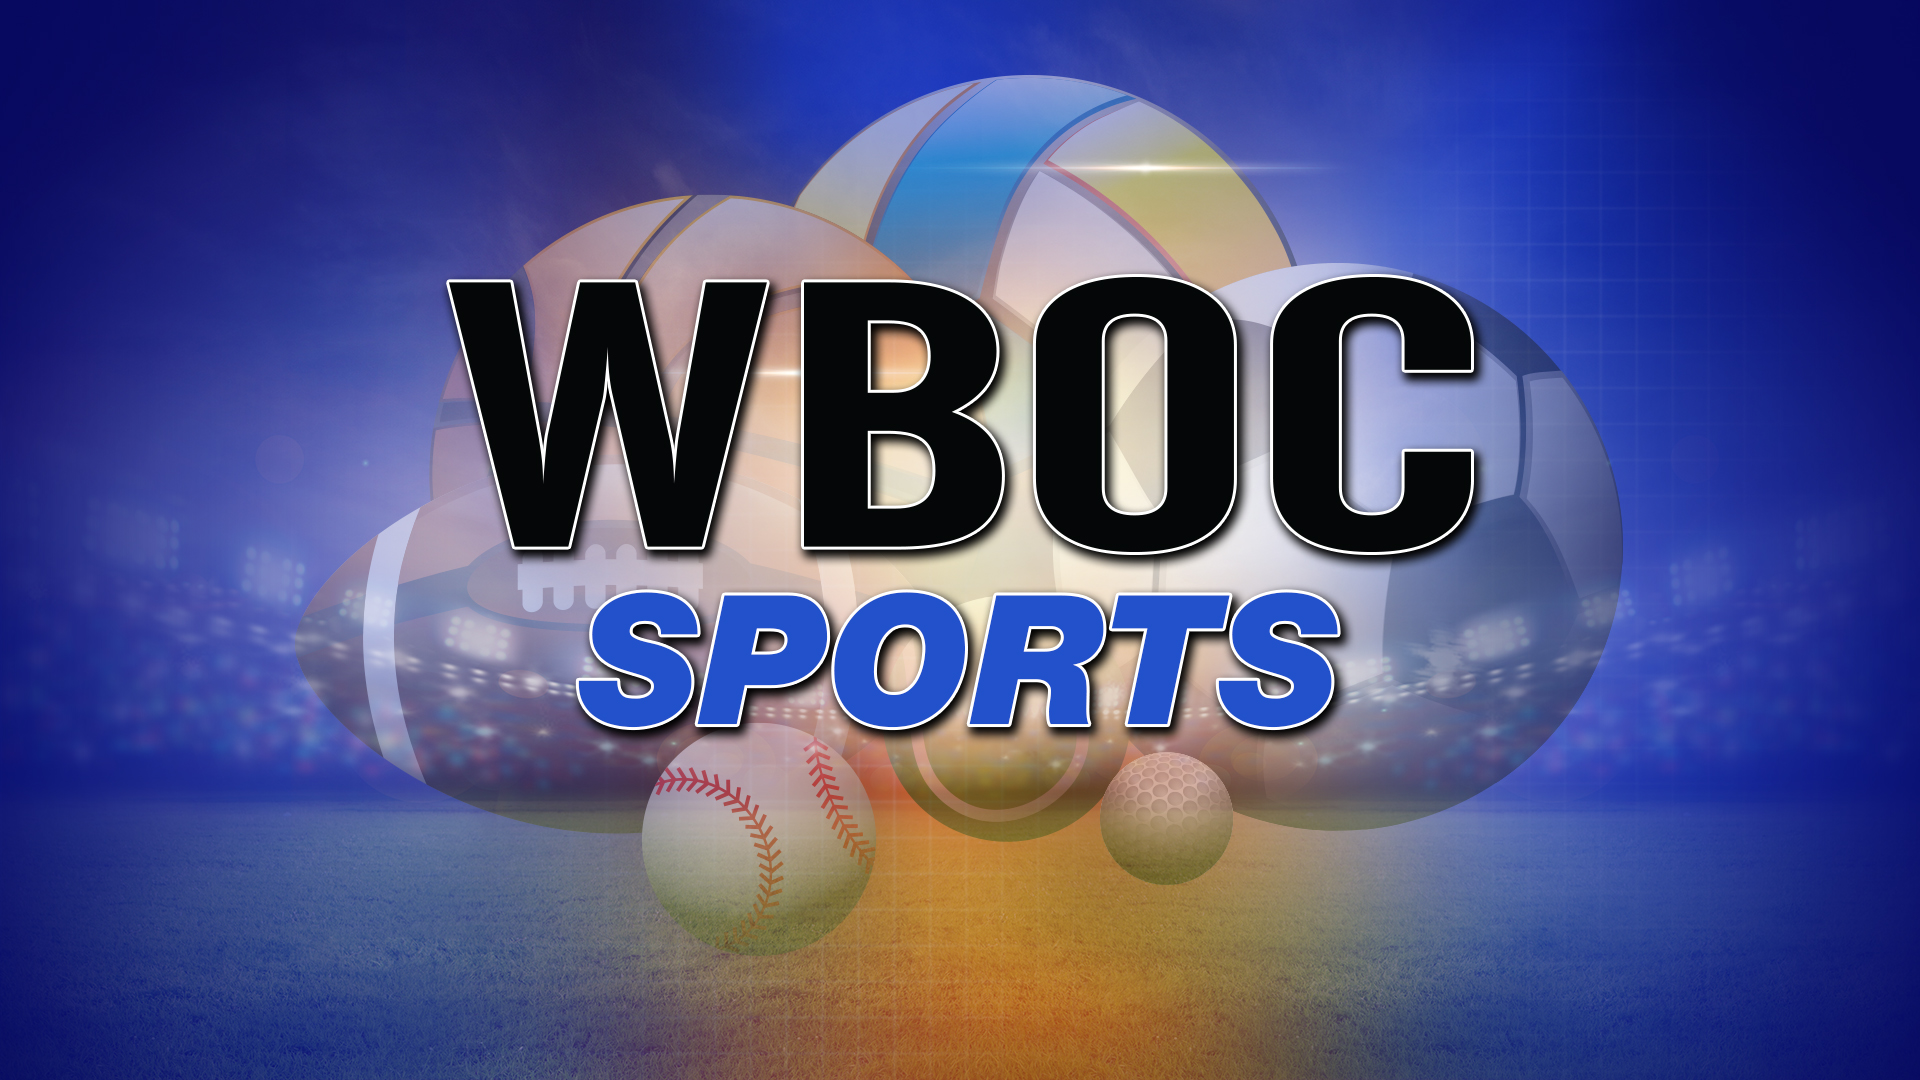 WBOC Sports Report: Tuesday, November 3, 2015